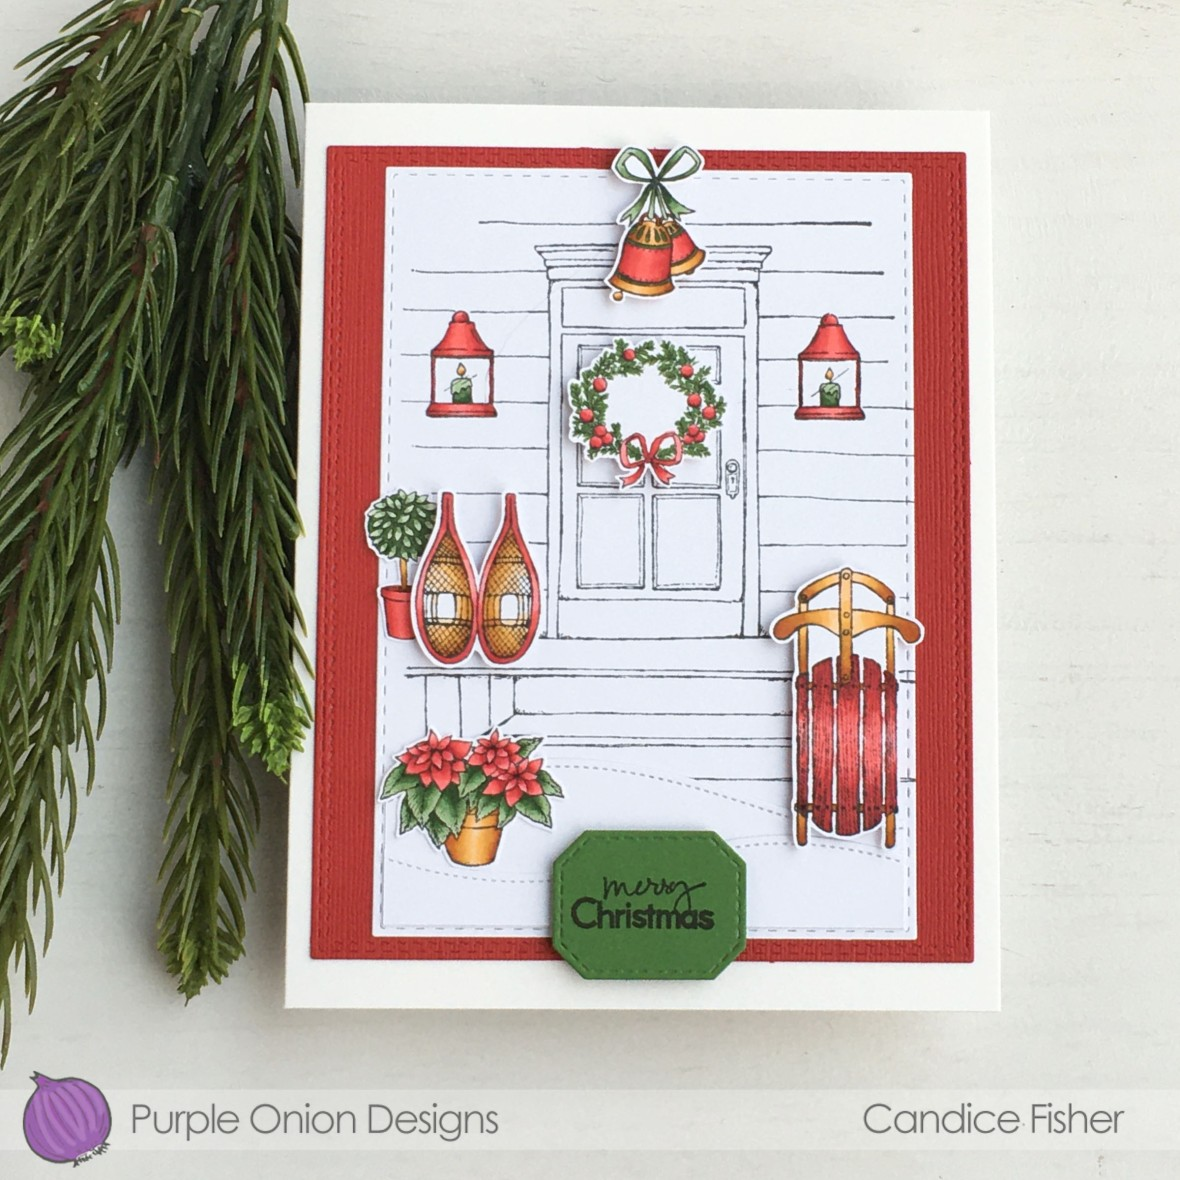 Candice Fisher-front door, door decor #1, winter sports